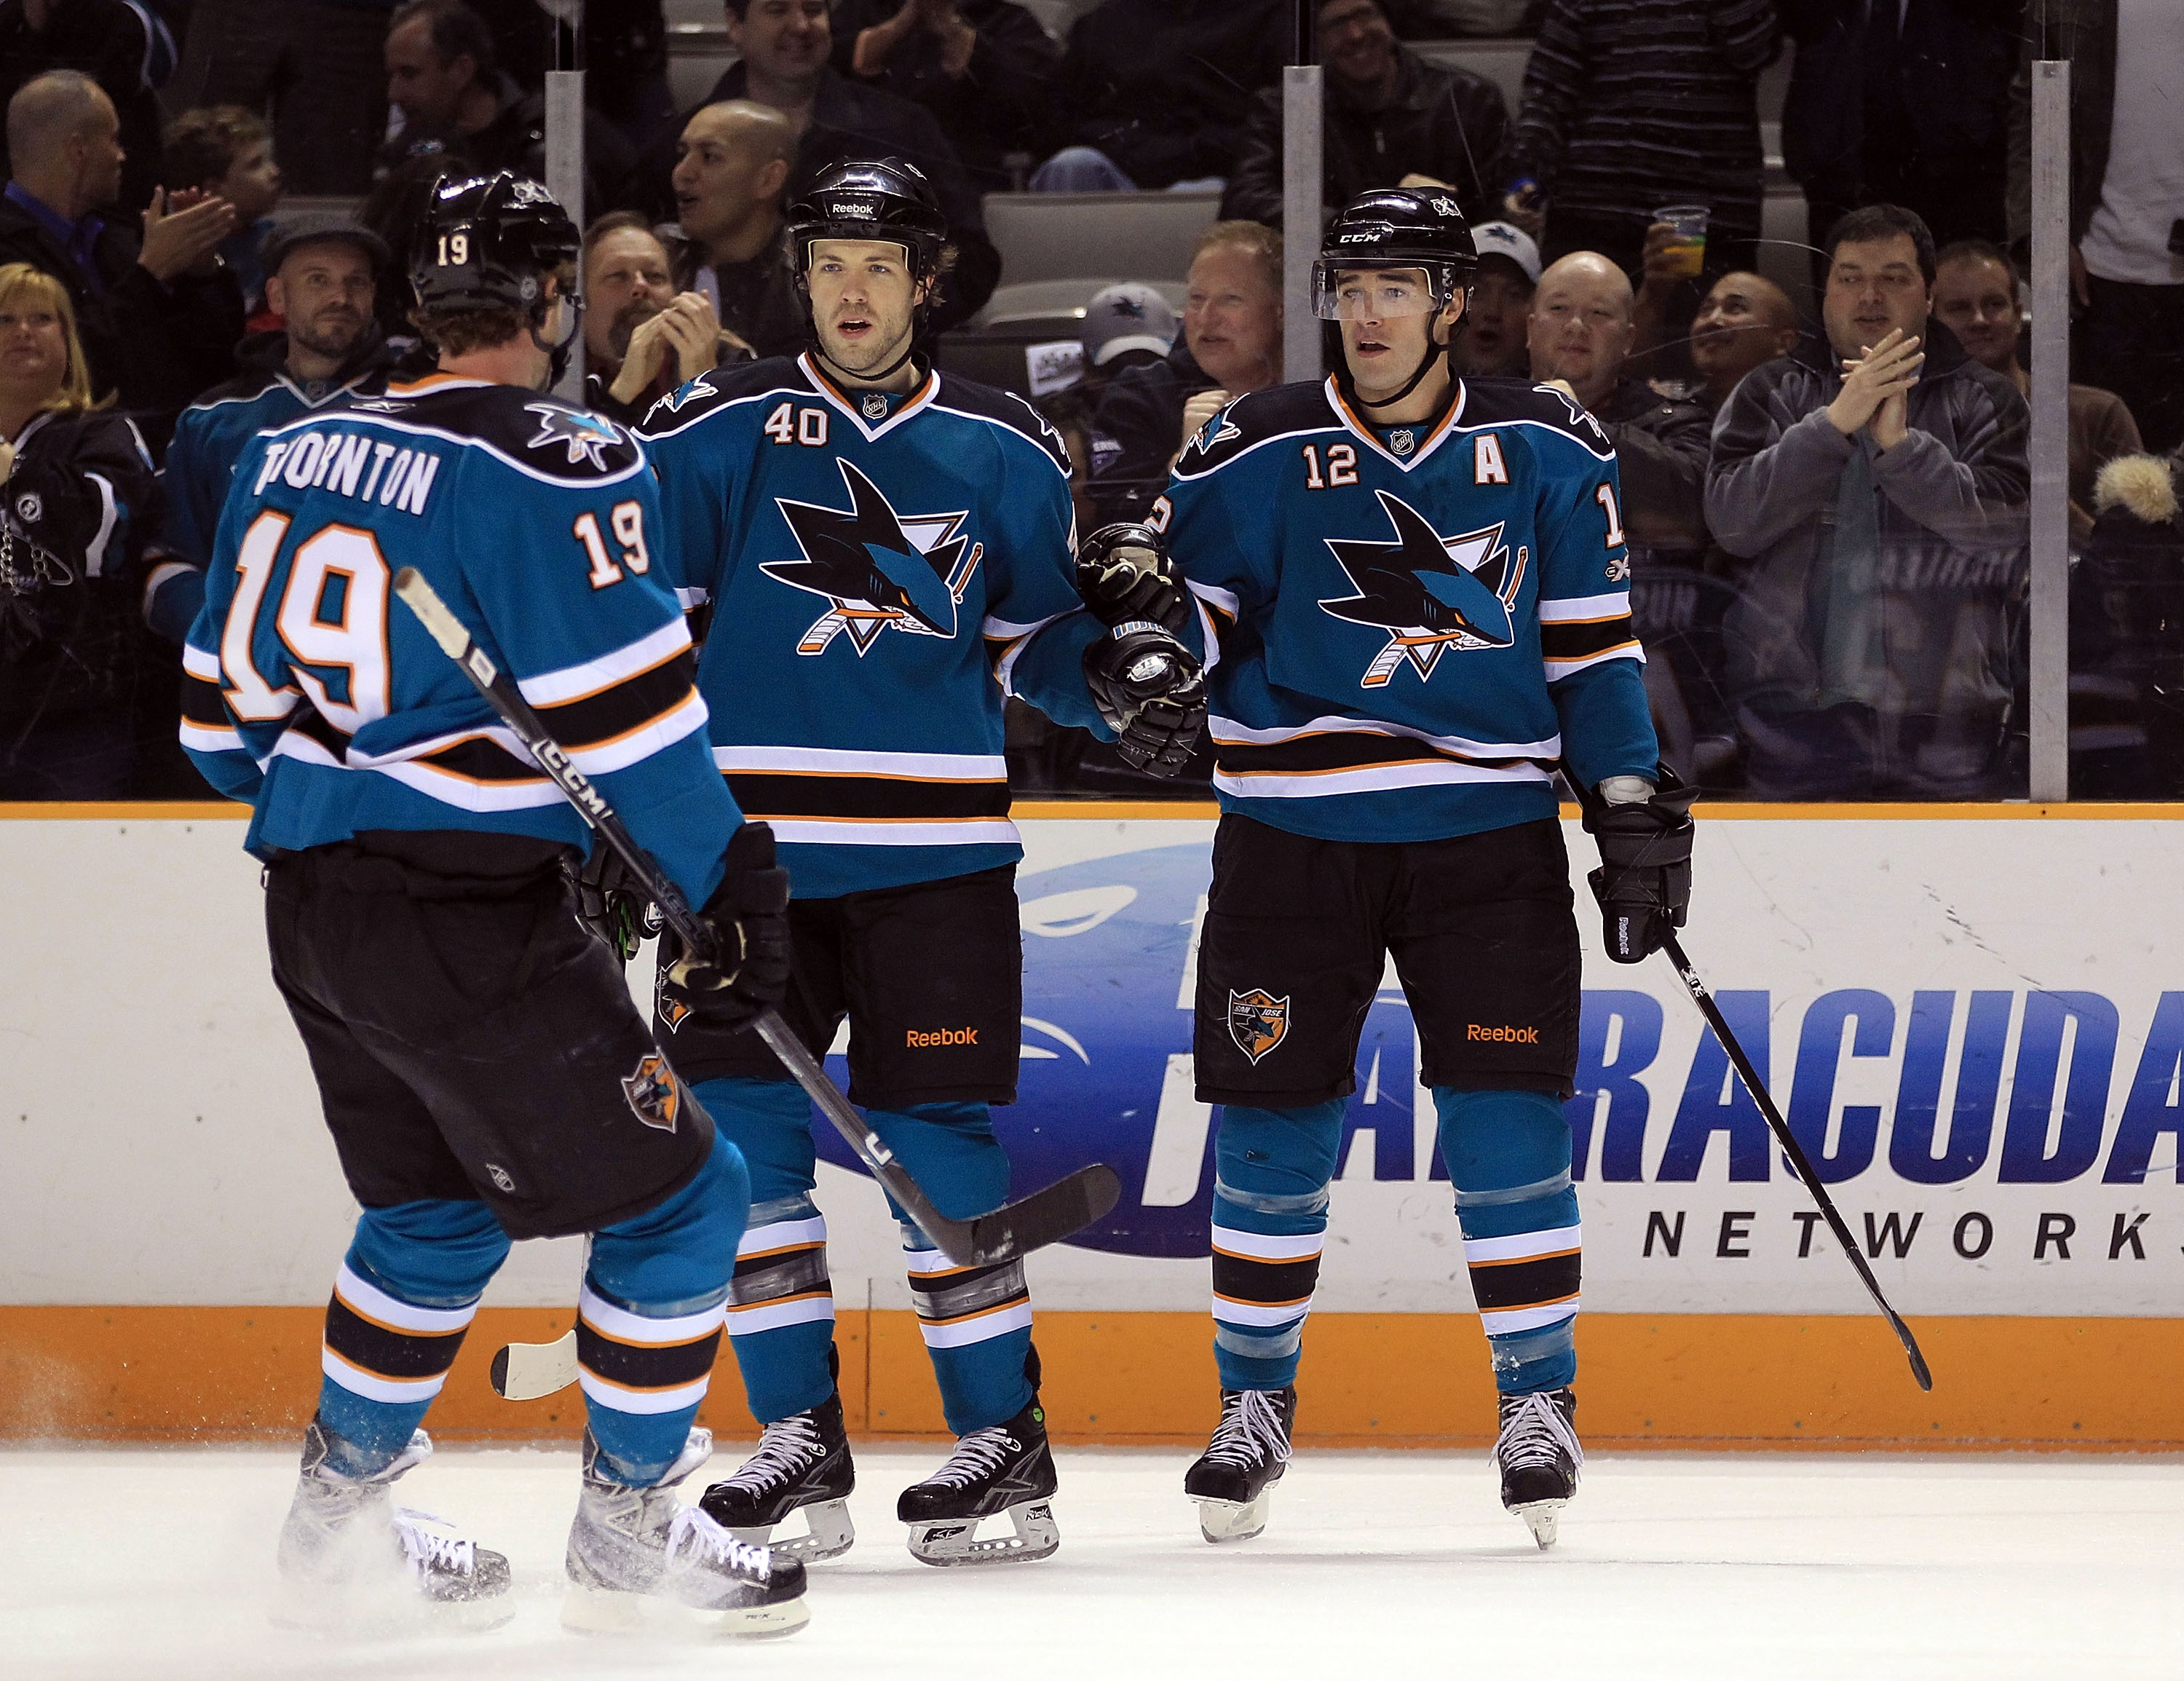 SAN JOSE, CA - JANUARY 11:  Patrick Marleau #12 is congratulated by Kent Huskins #40 and Joe Thornton #19 of the San Jose Sharks after Marleau scored a goal against the Toronto Maple Leafs at HP Pavilion on January 11, 2011 in San Jose, California.  (Phot